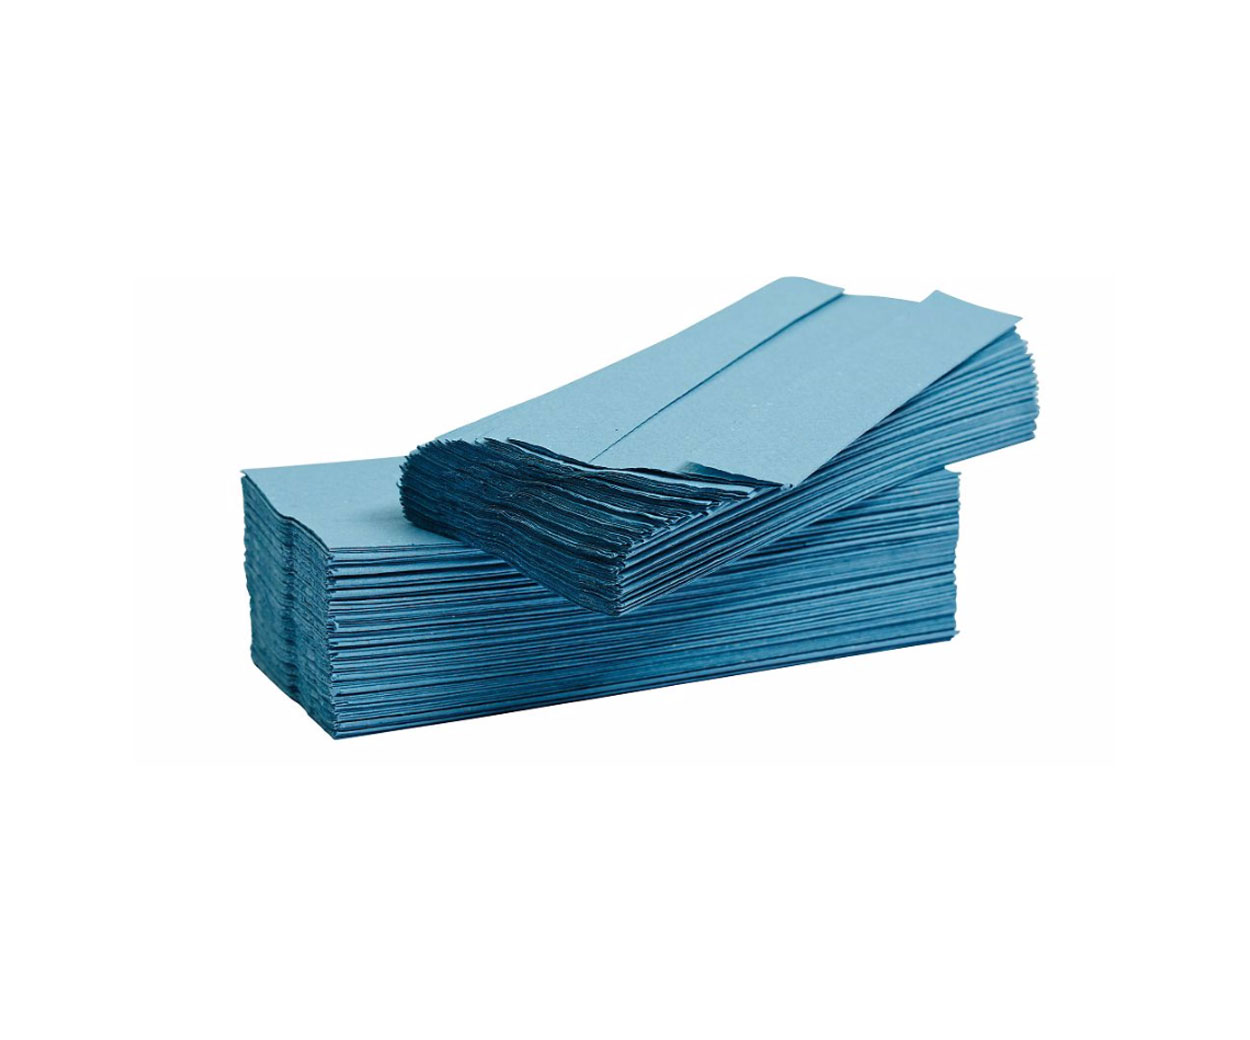 Lyreco Blue Hand Towels - Pack of 2880